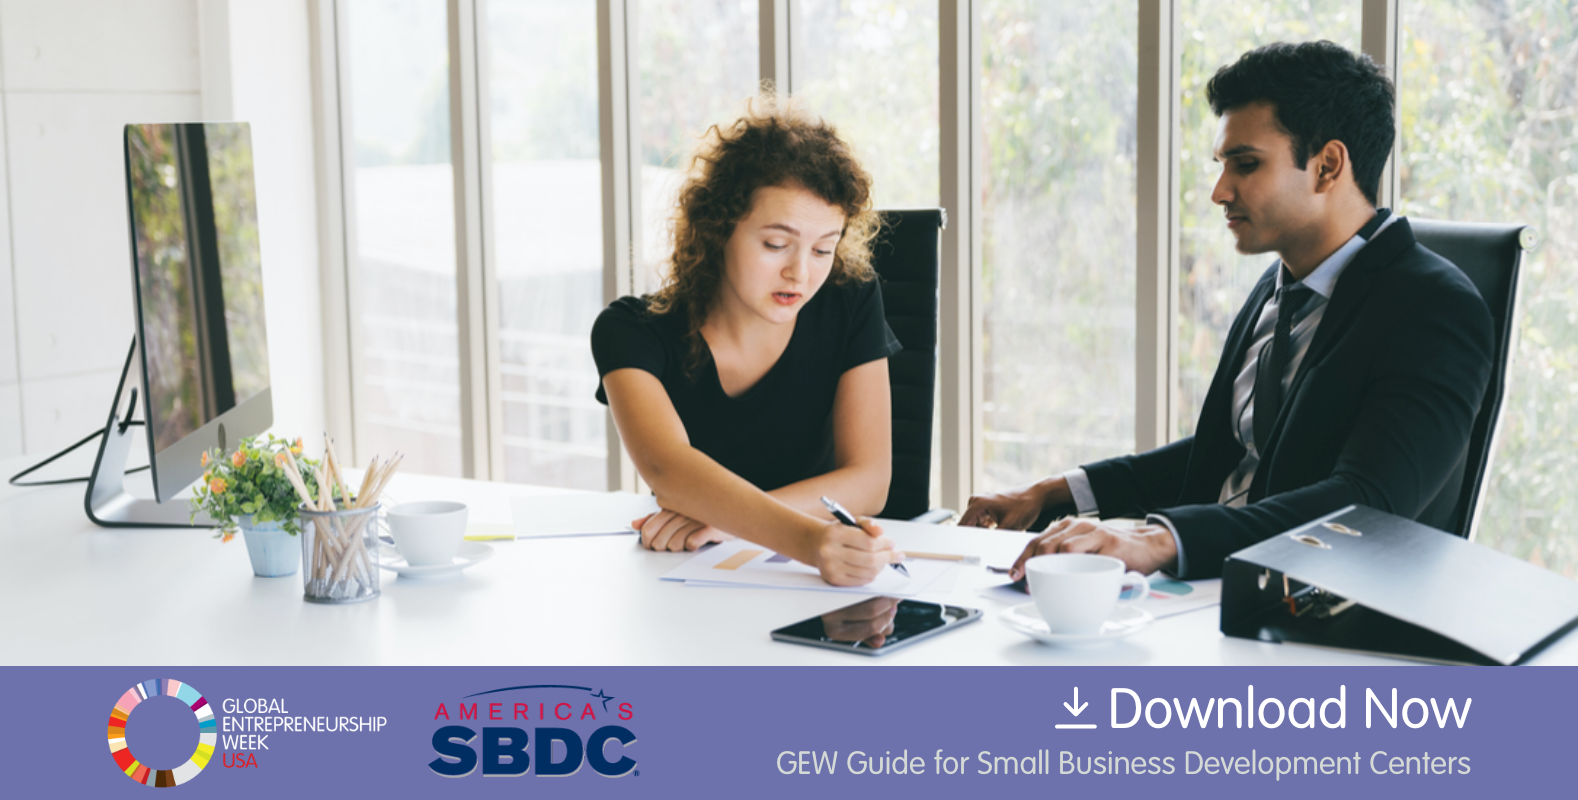 GEW Guide for Small Business Development Centers